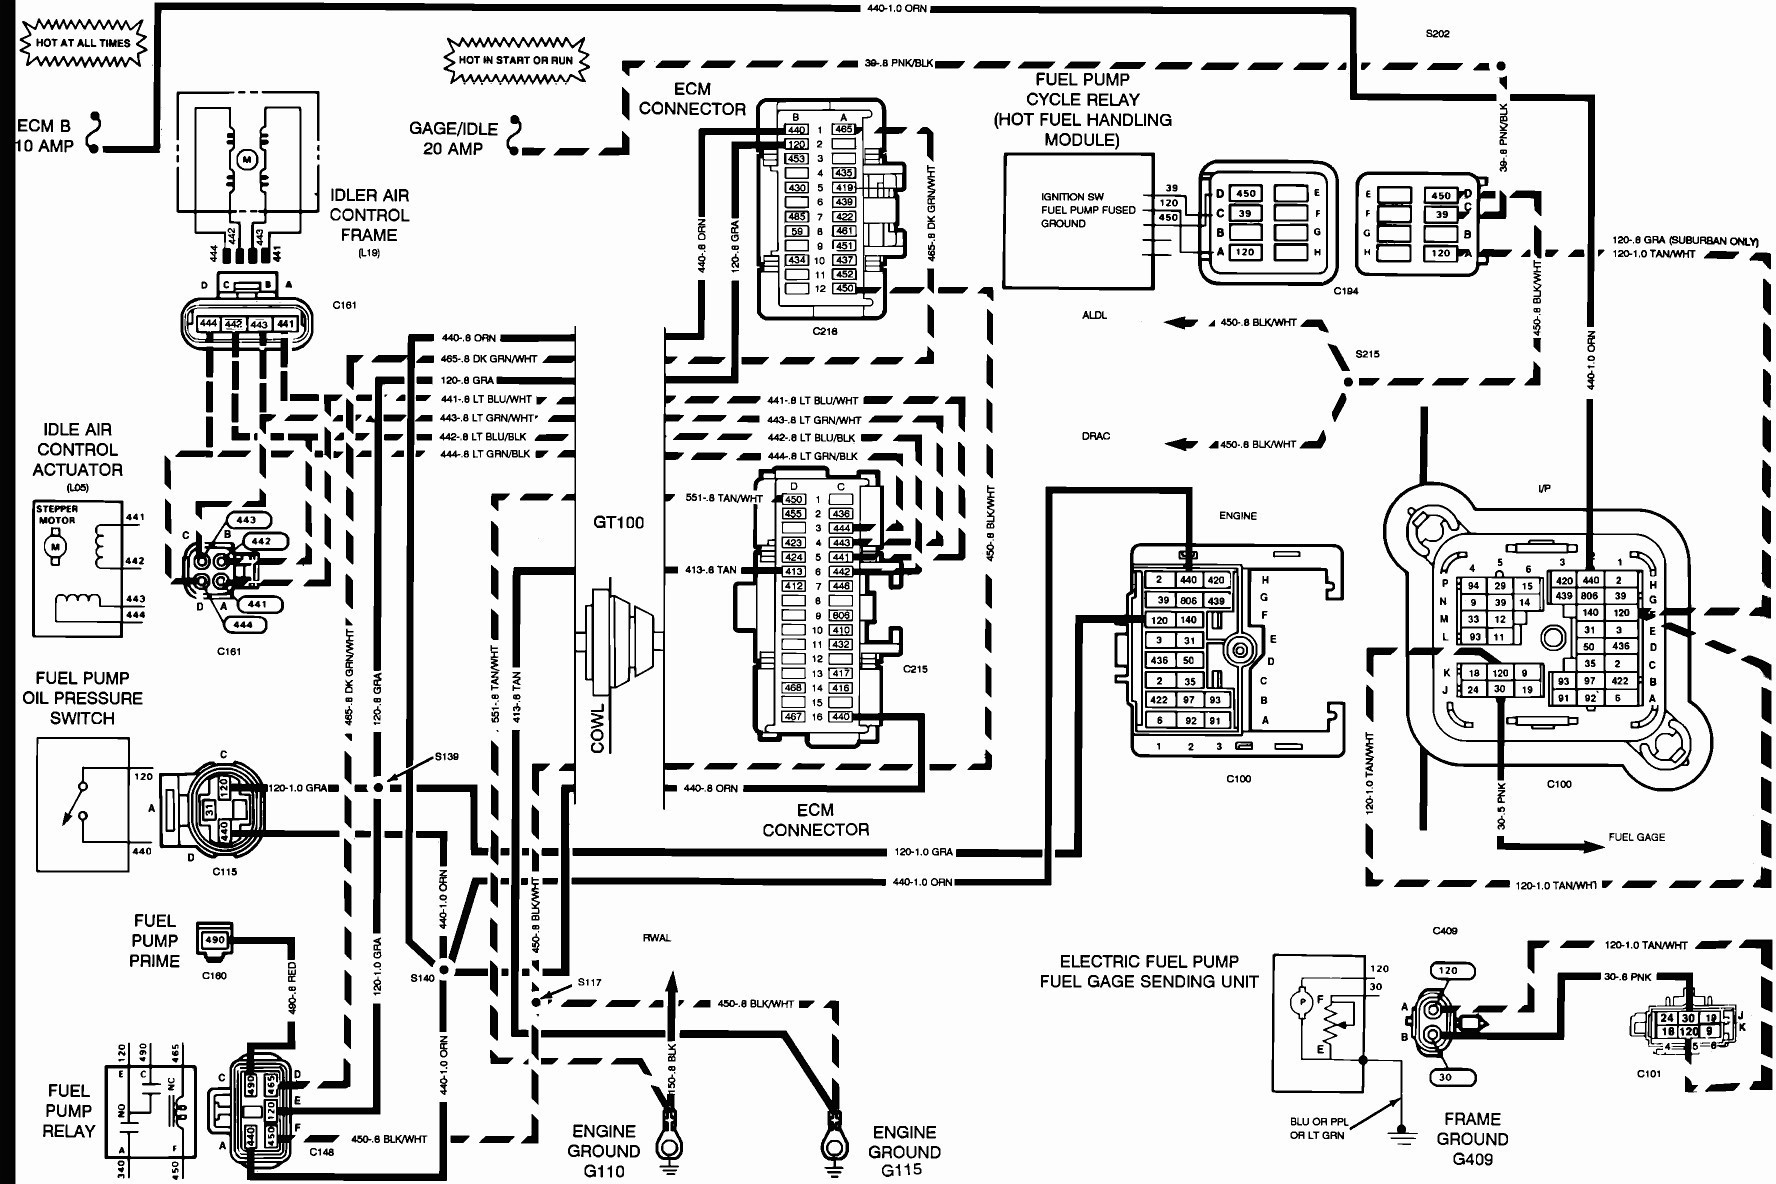 Freightliner Chassis Wiring Diagram Fleetwood Rv Battery Wiring 4 Wire  Trailer Light Diagram